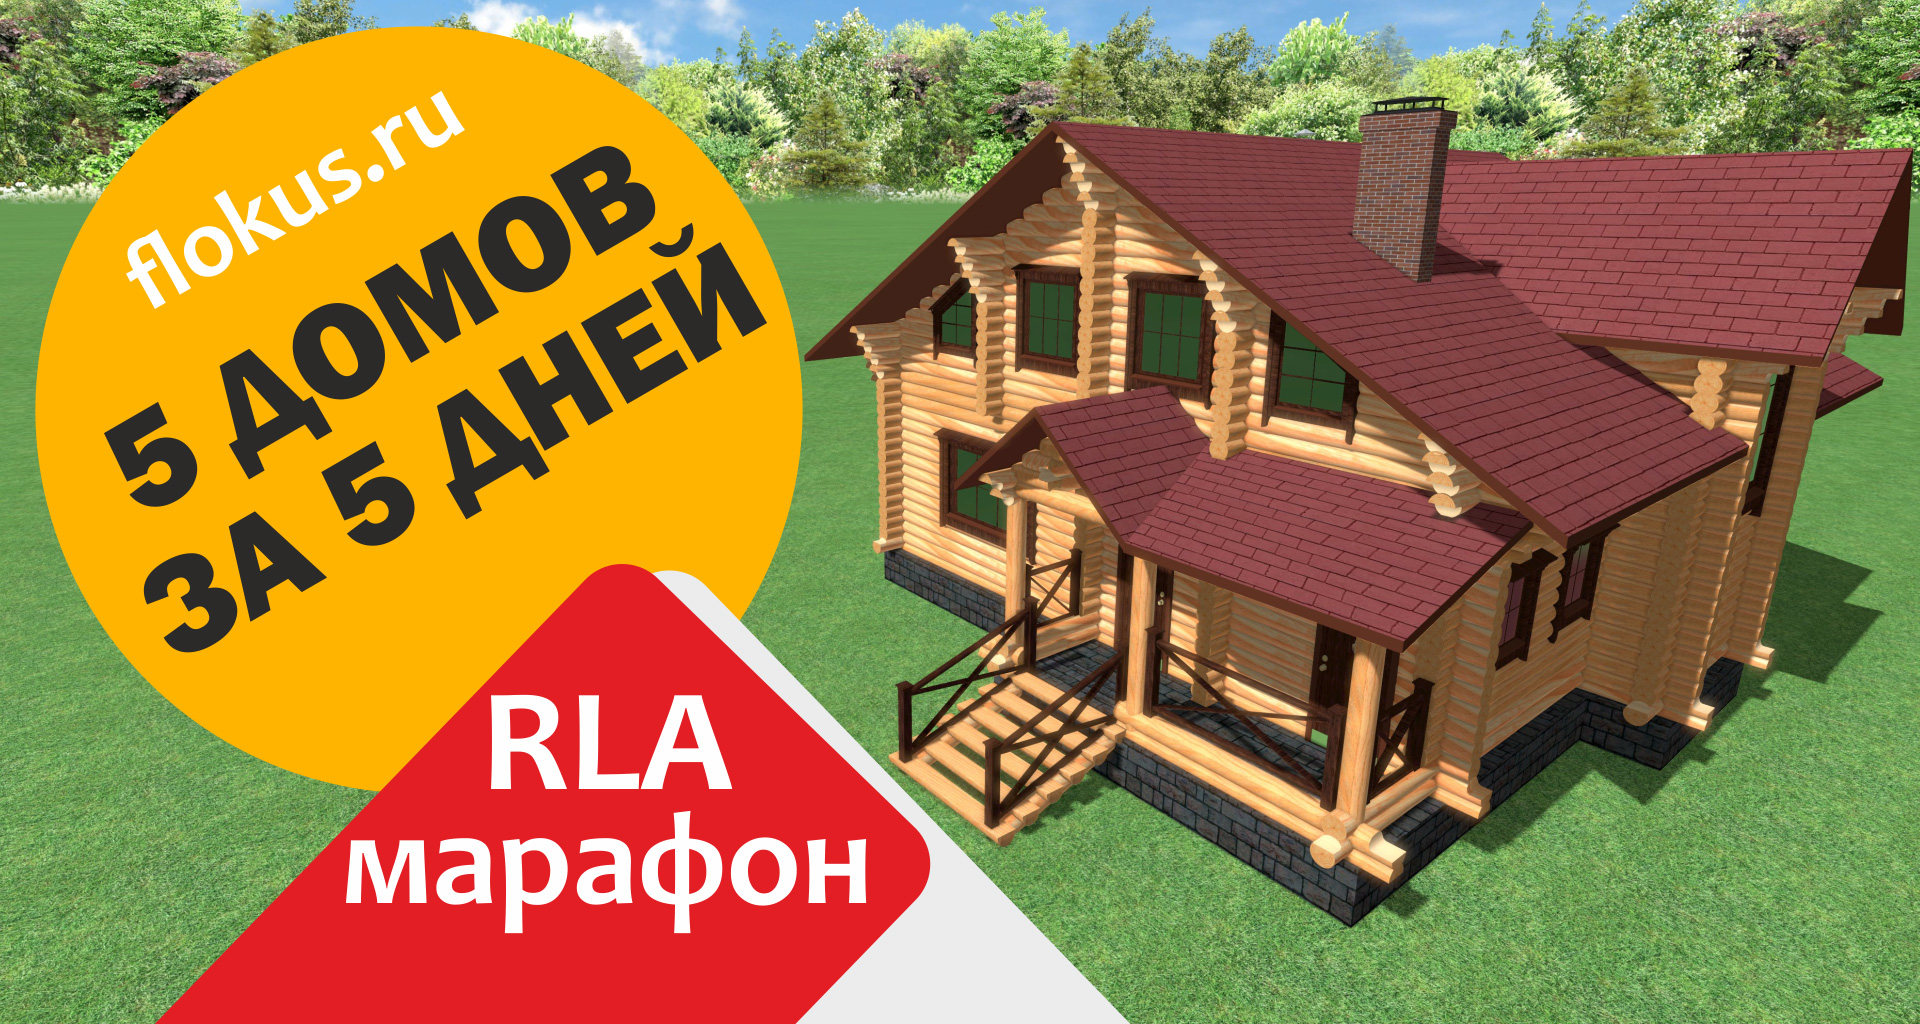 Дом-Баня для Realtime landscaping architect (Марафон 5 домов за 5 дней в RLA)